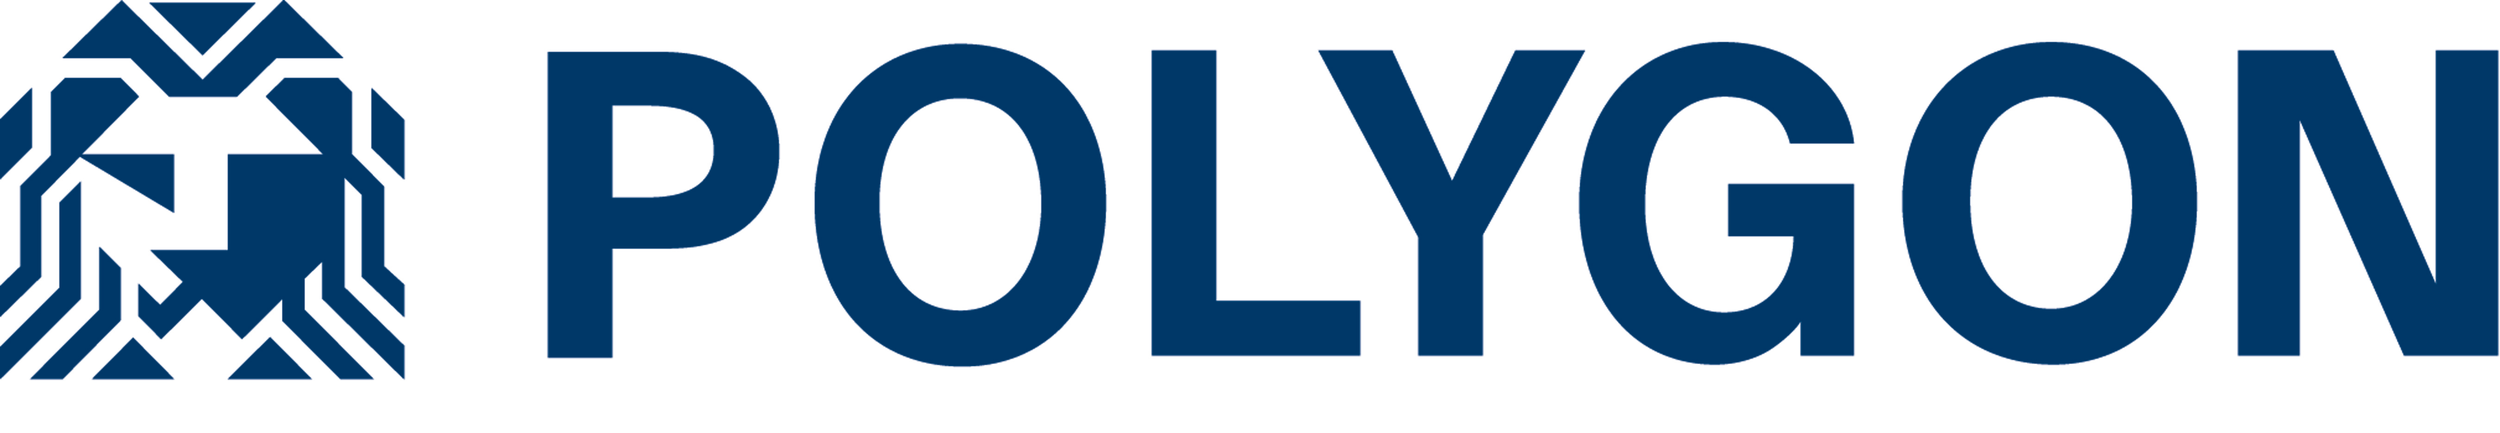 polygon_horiz_logo_with_website.png